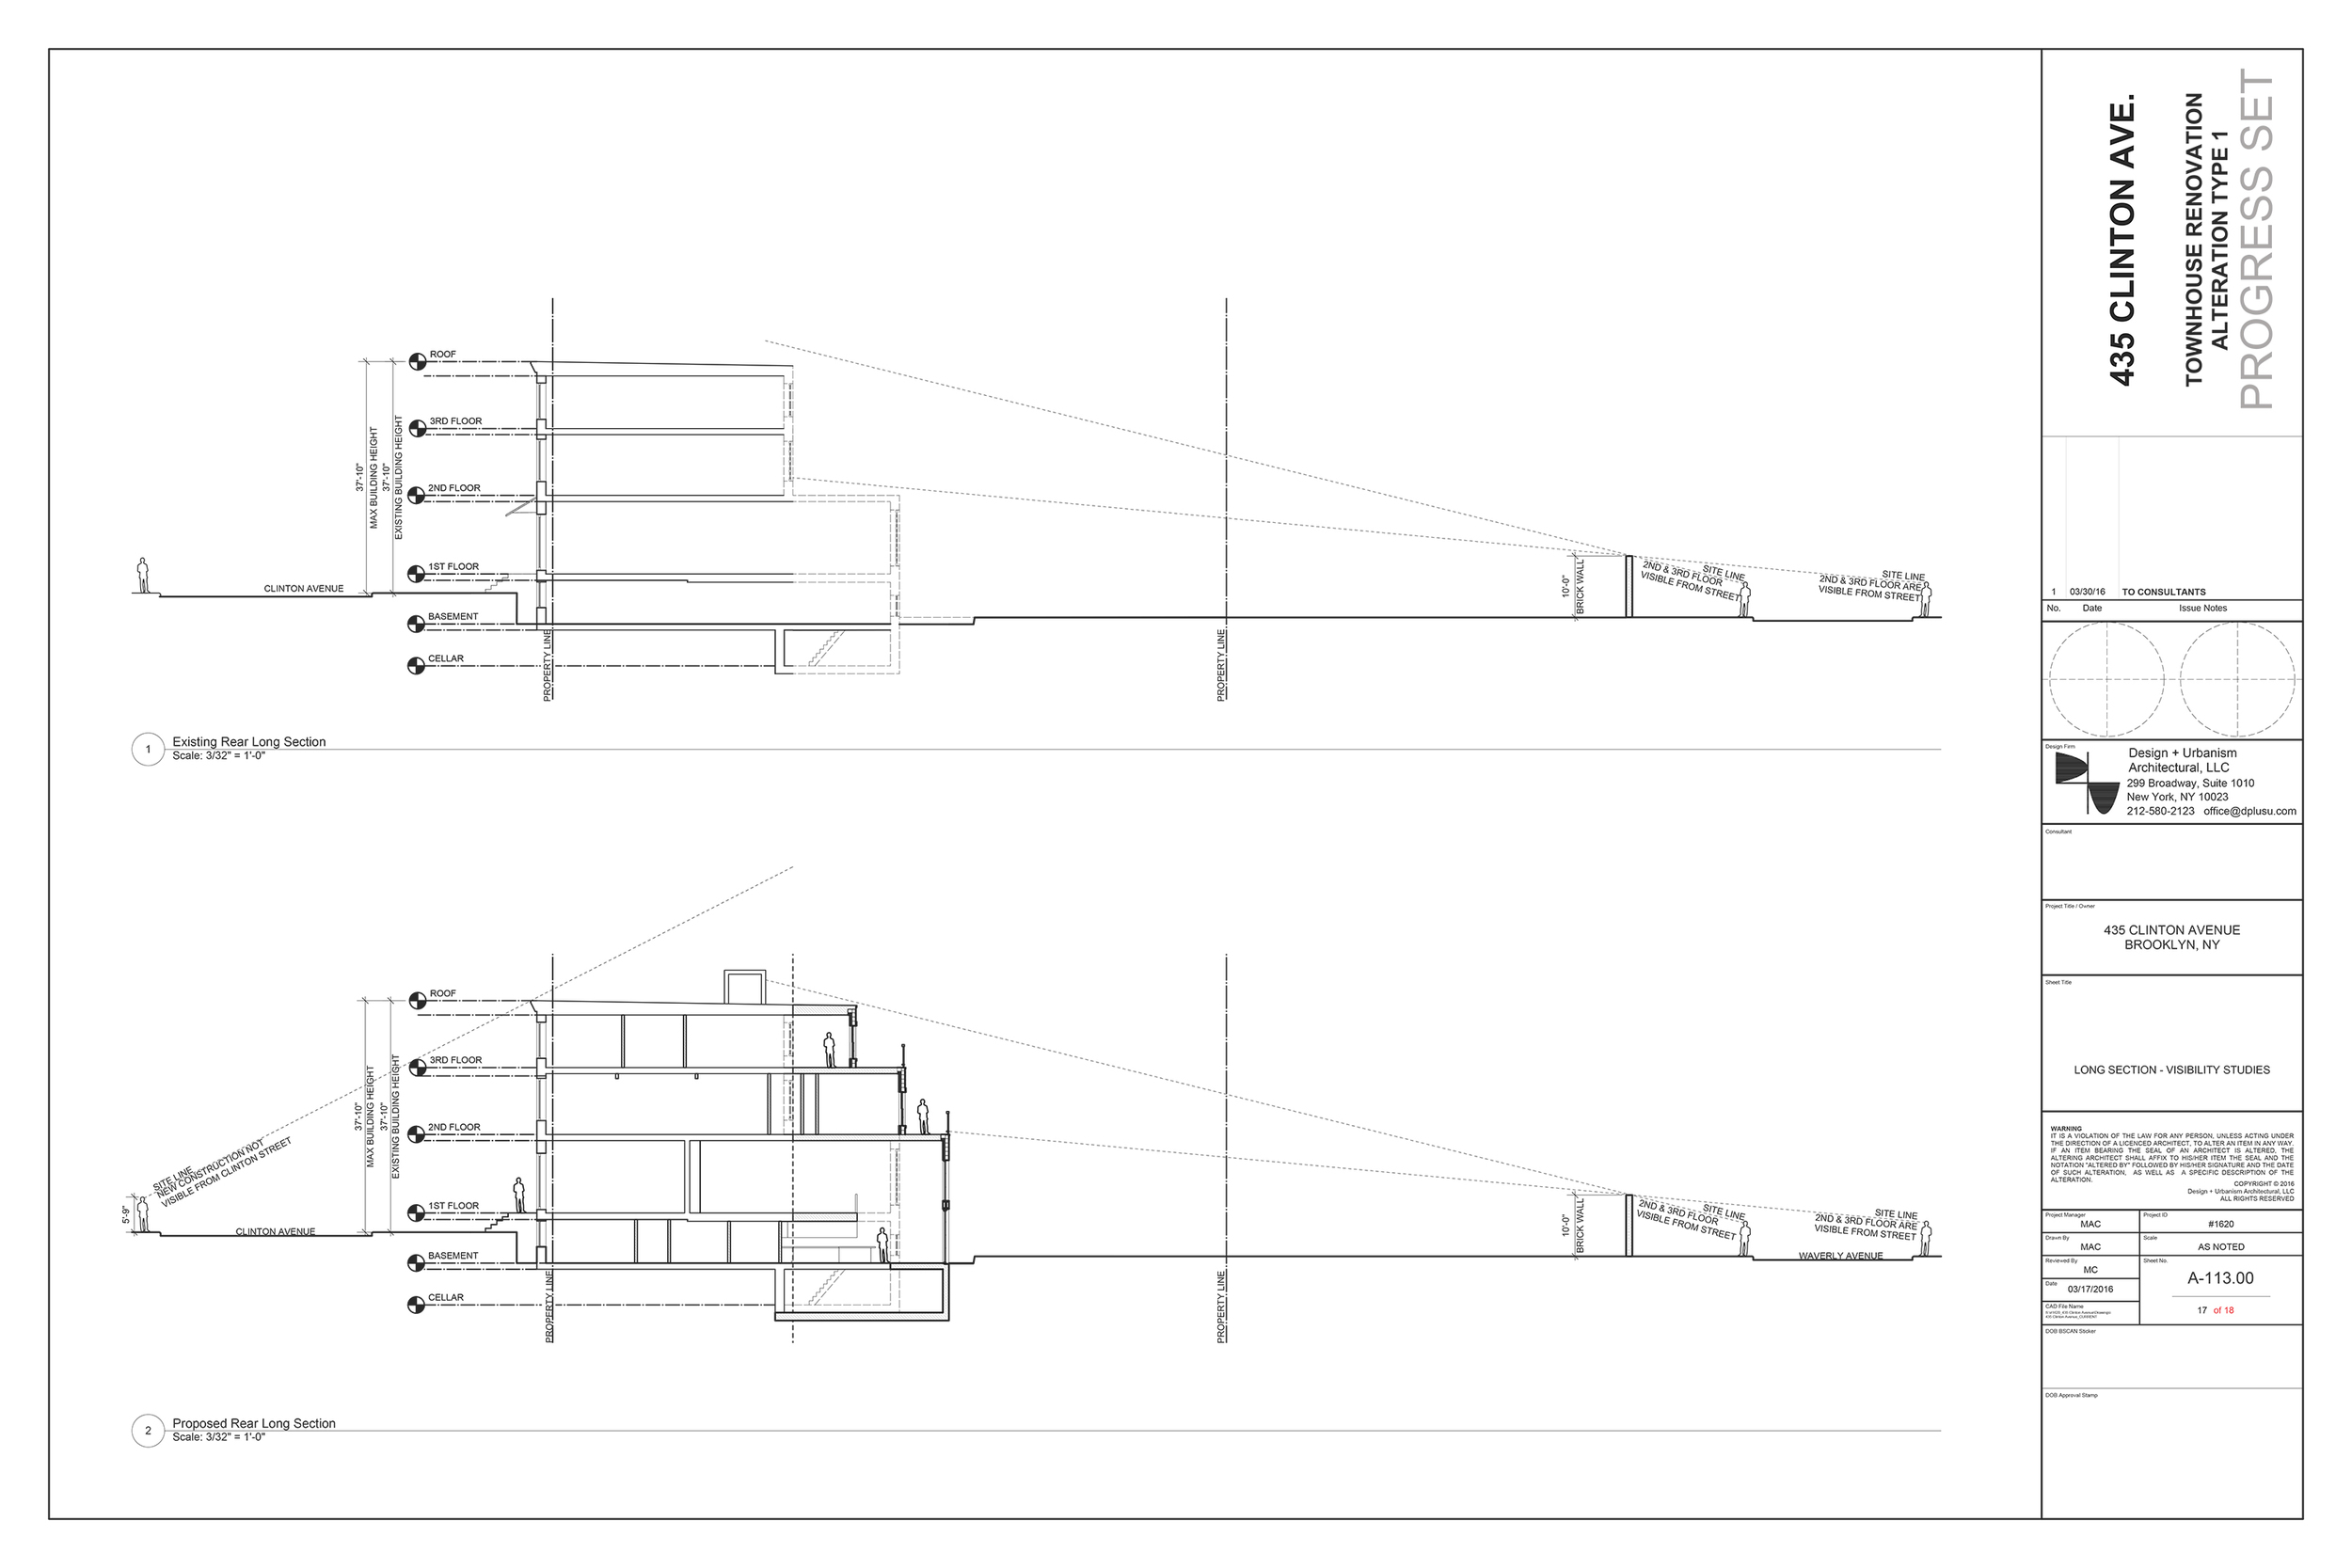 E_435 Clinton Avenue_ALT 1 Filing_existing and proposed sections.jpg